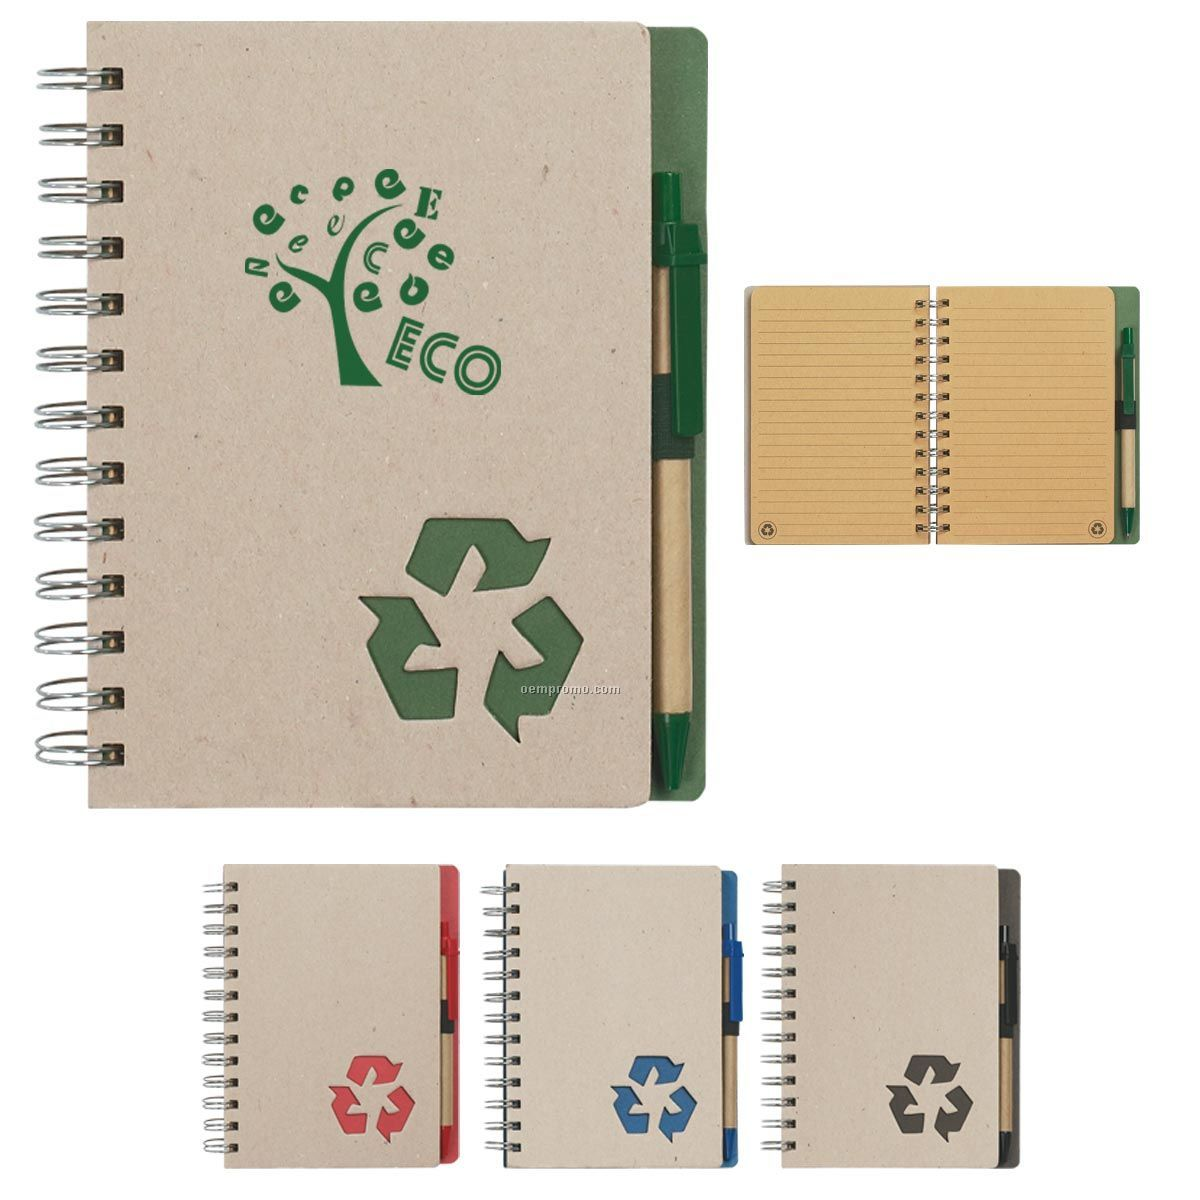 Eco-rich Spiral Notebook & Pen